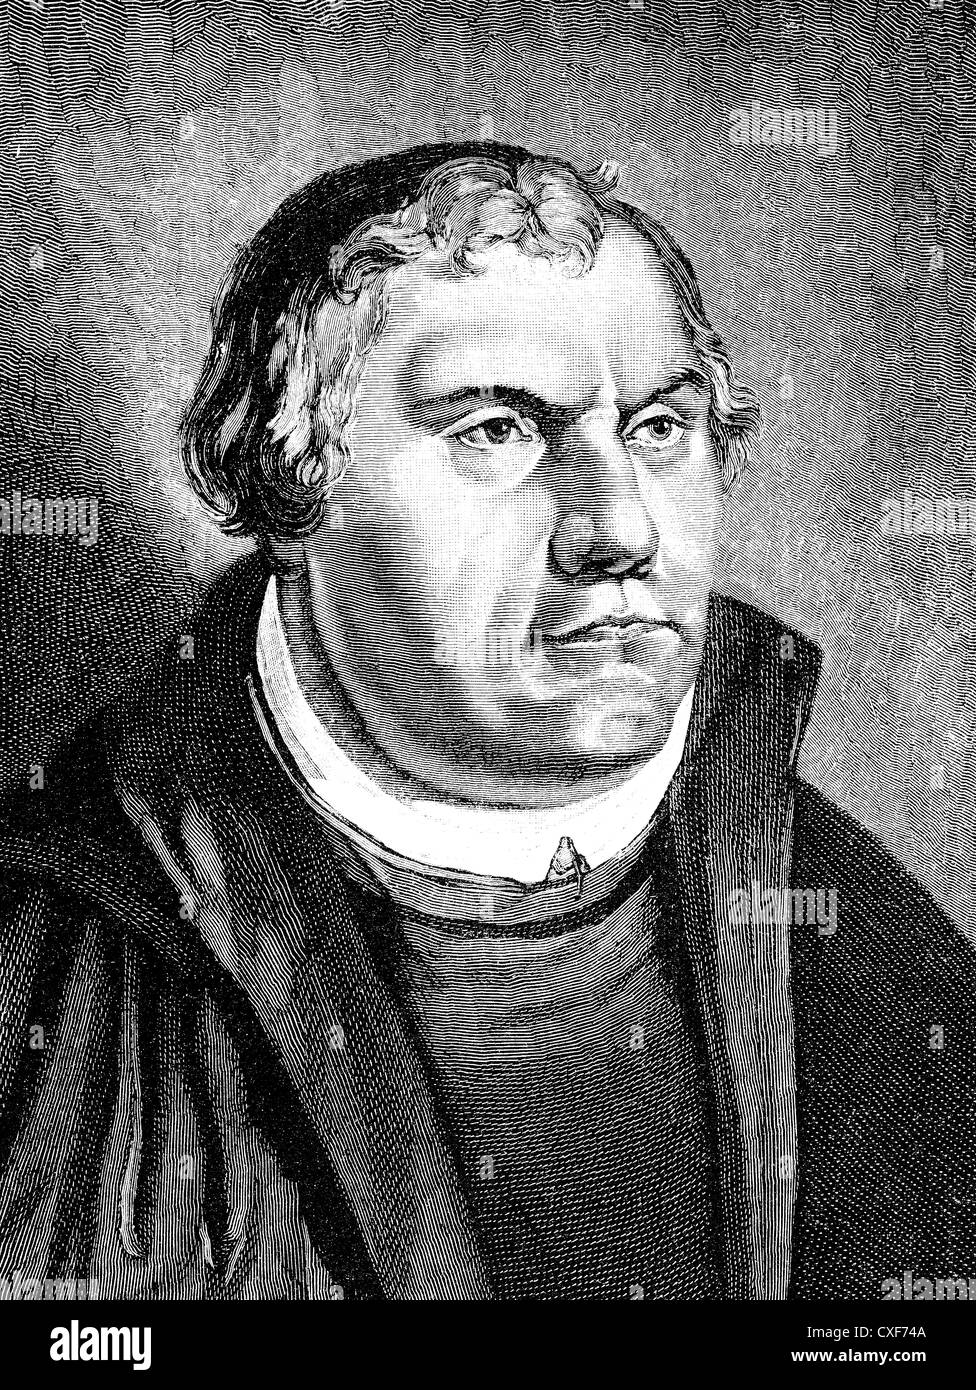 Martin Luther, 1483 - 1546, theologian and reformer, - Stock Image